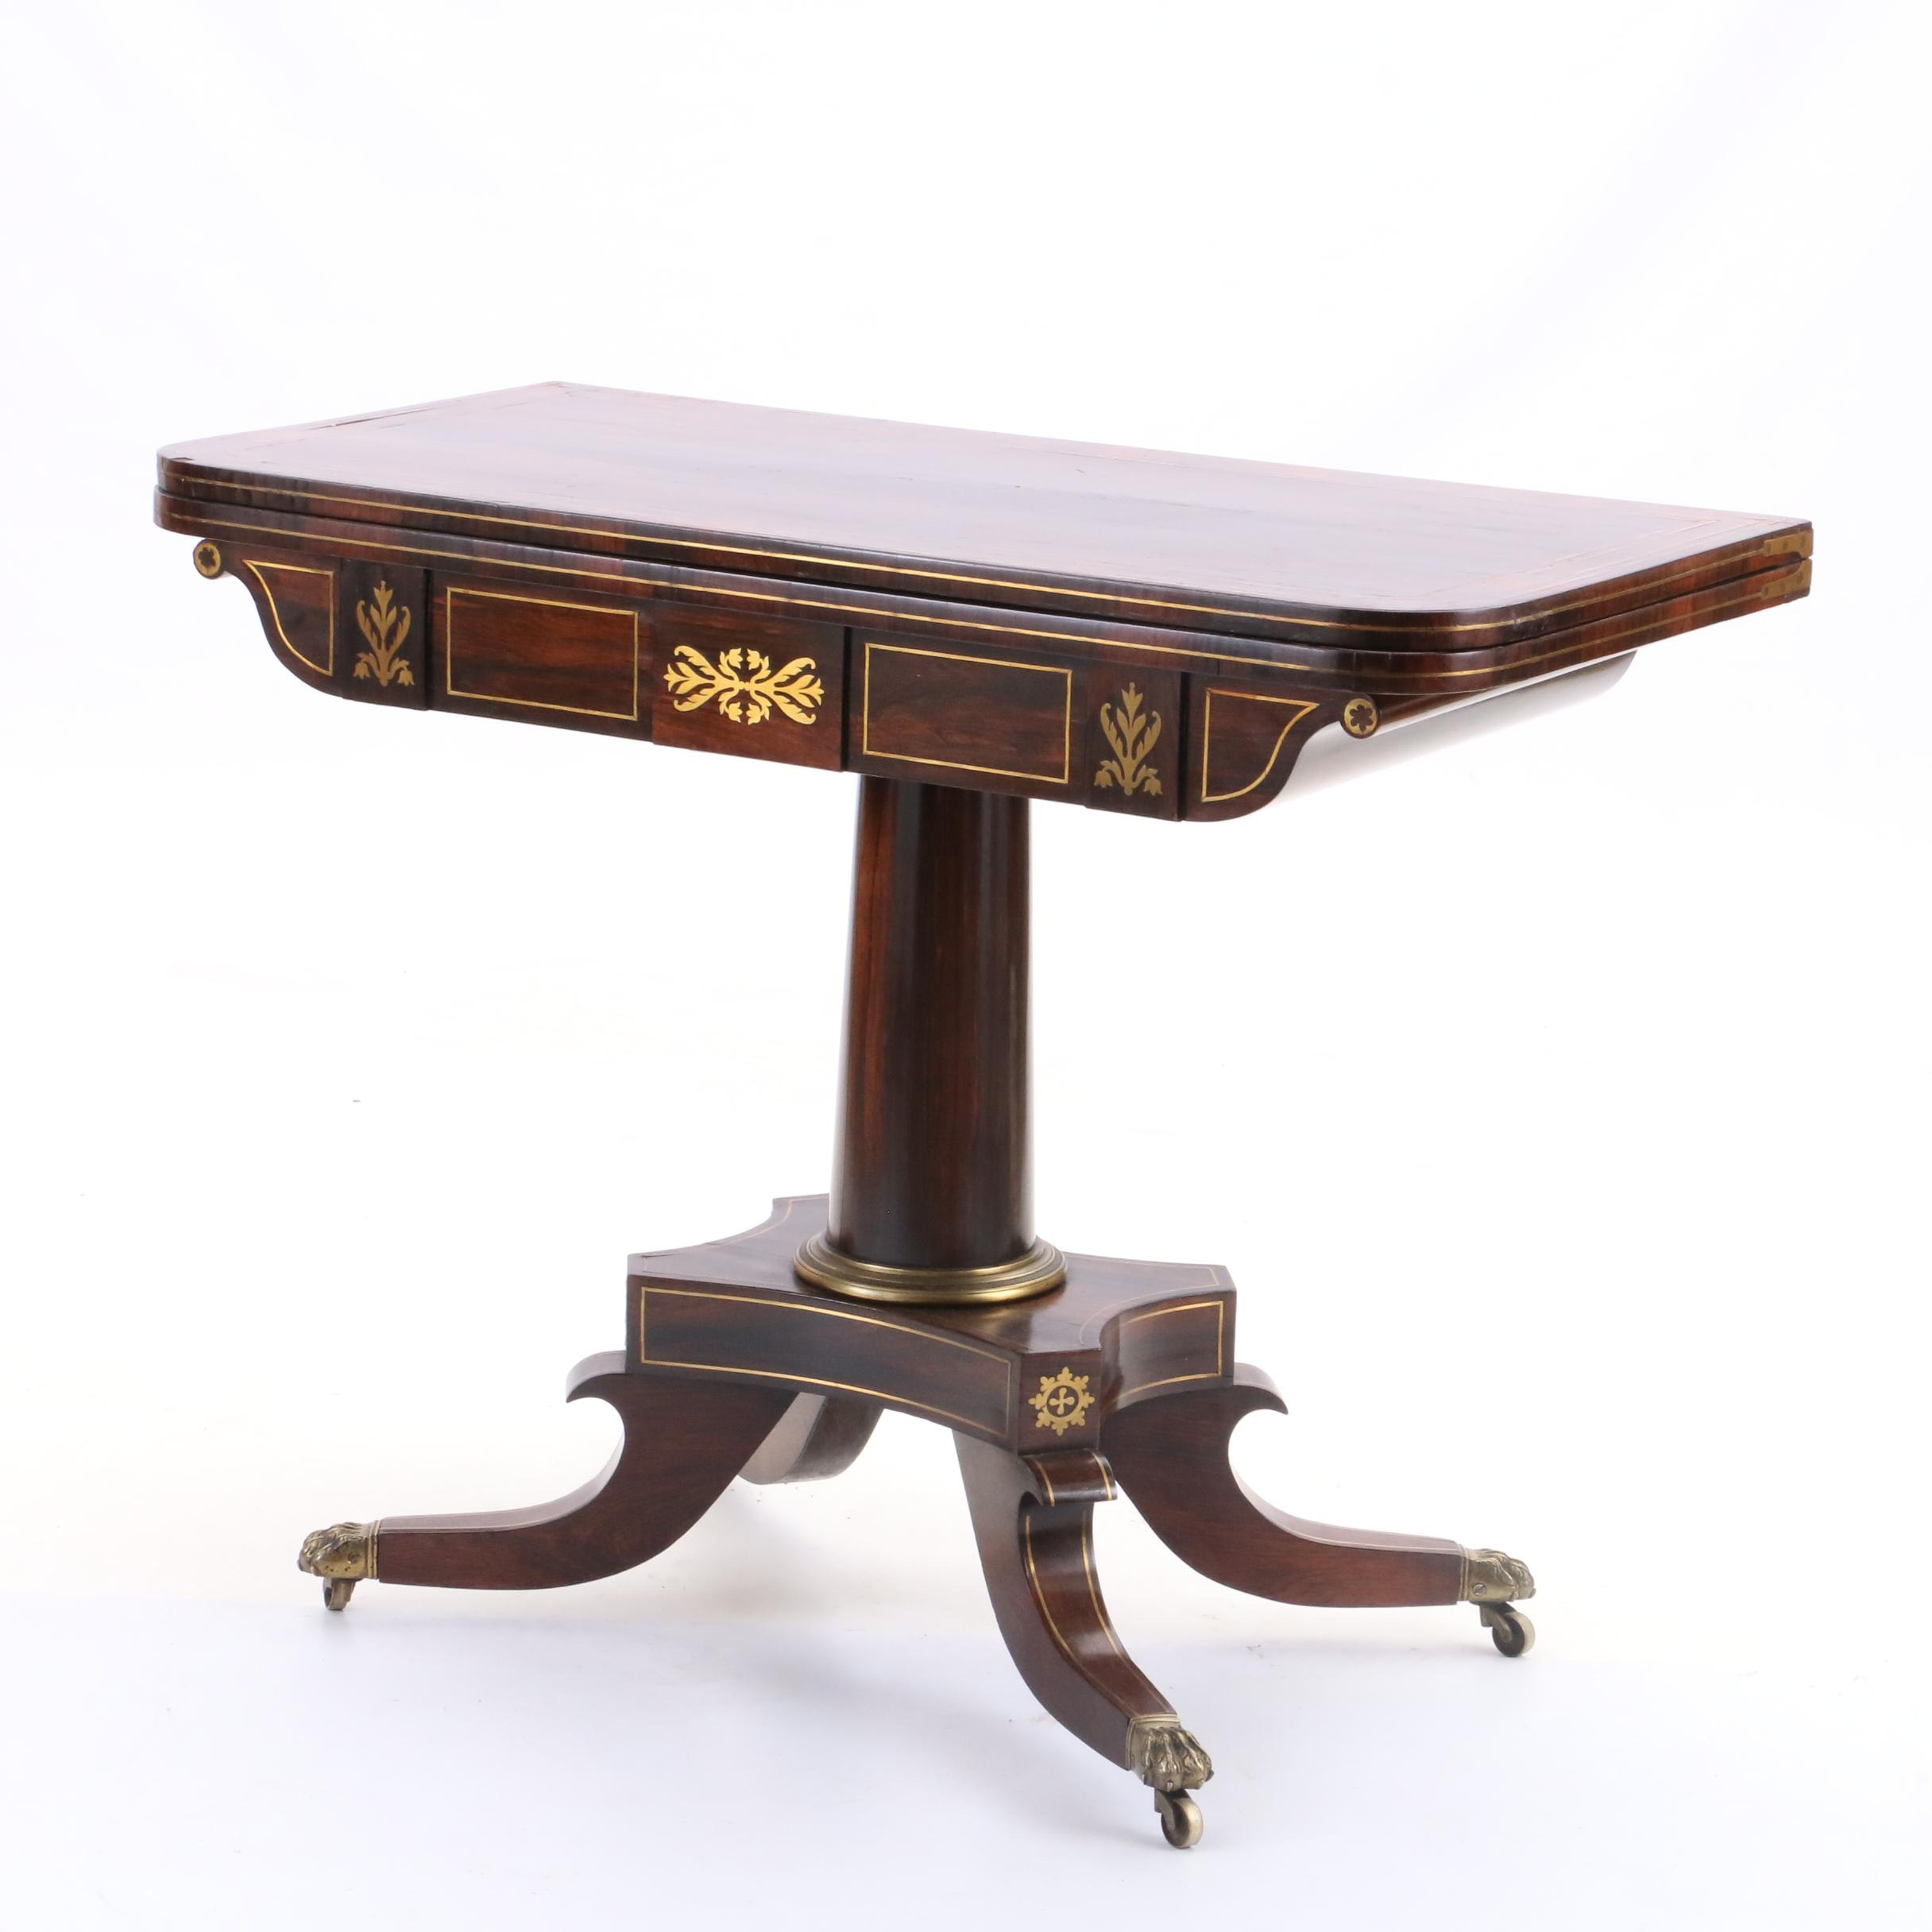 Regency Rosewood and Brass Inlay Game Table, Early 19th Century